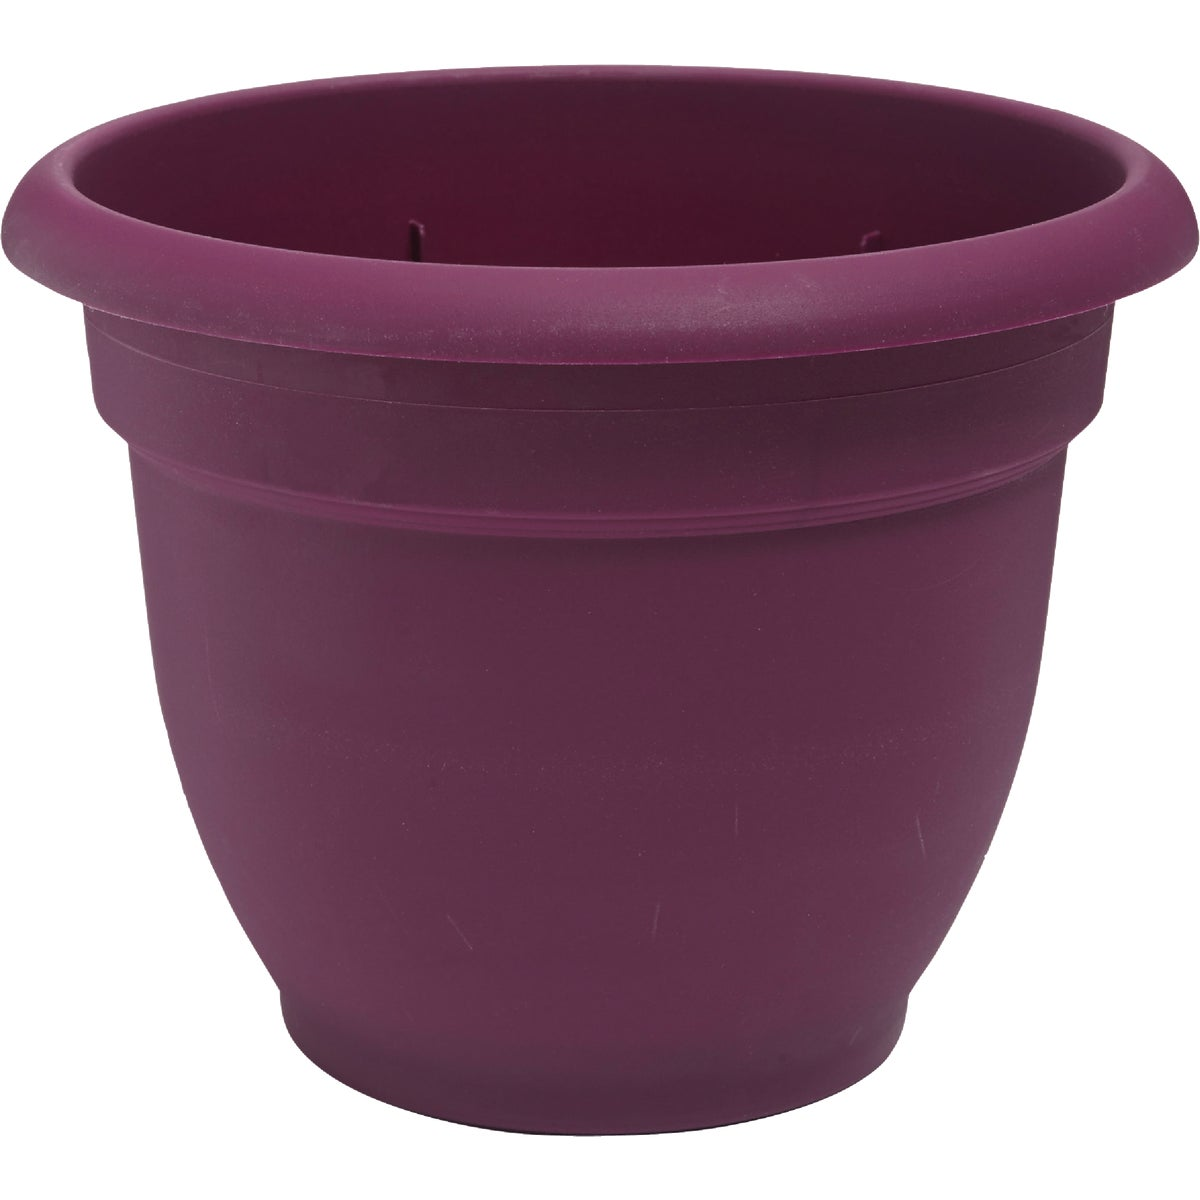 "12"" FUSIA ARIANA POT - 465123-1001 by Fiskars Brands Inc"